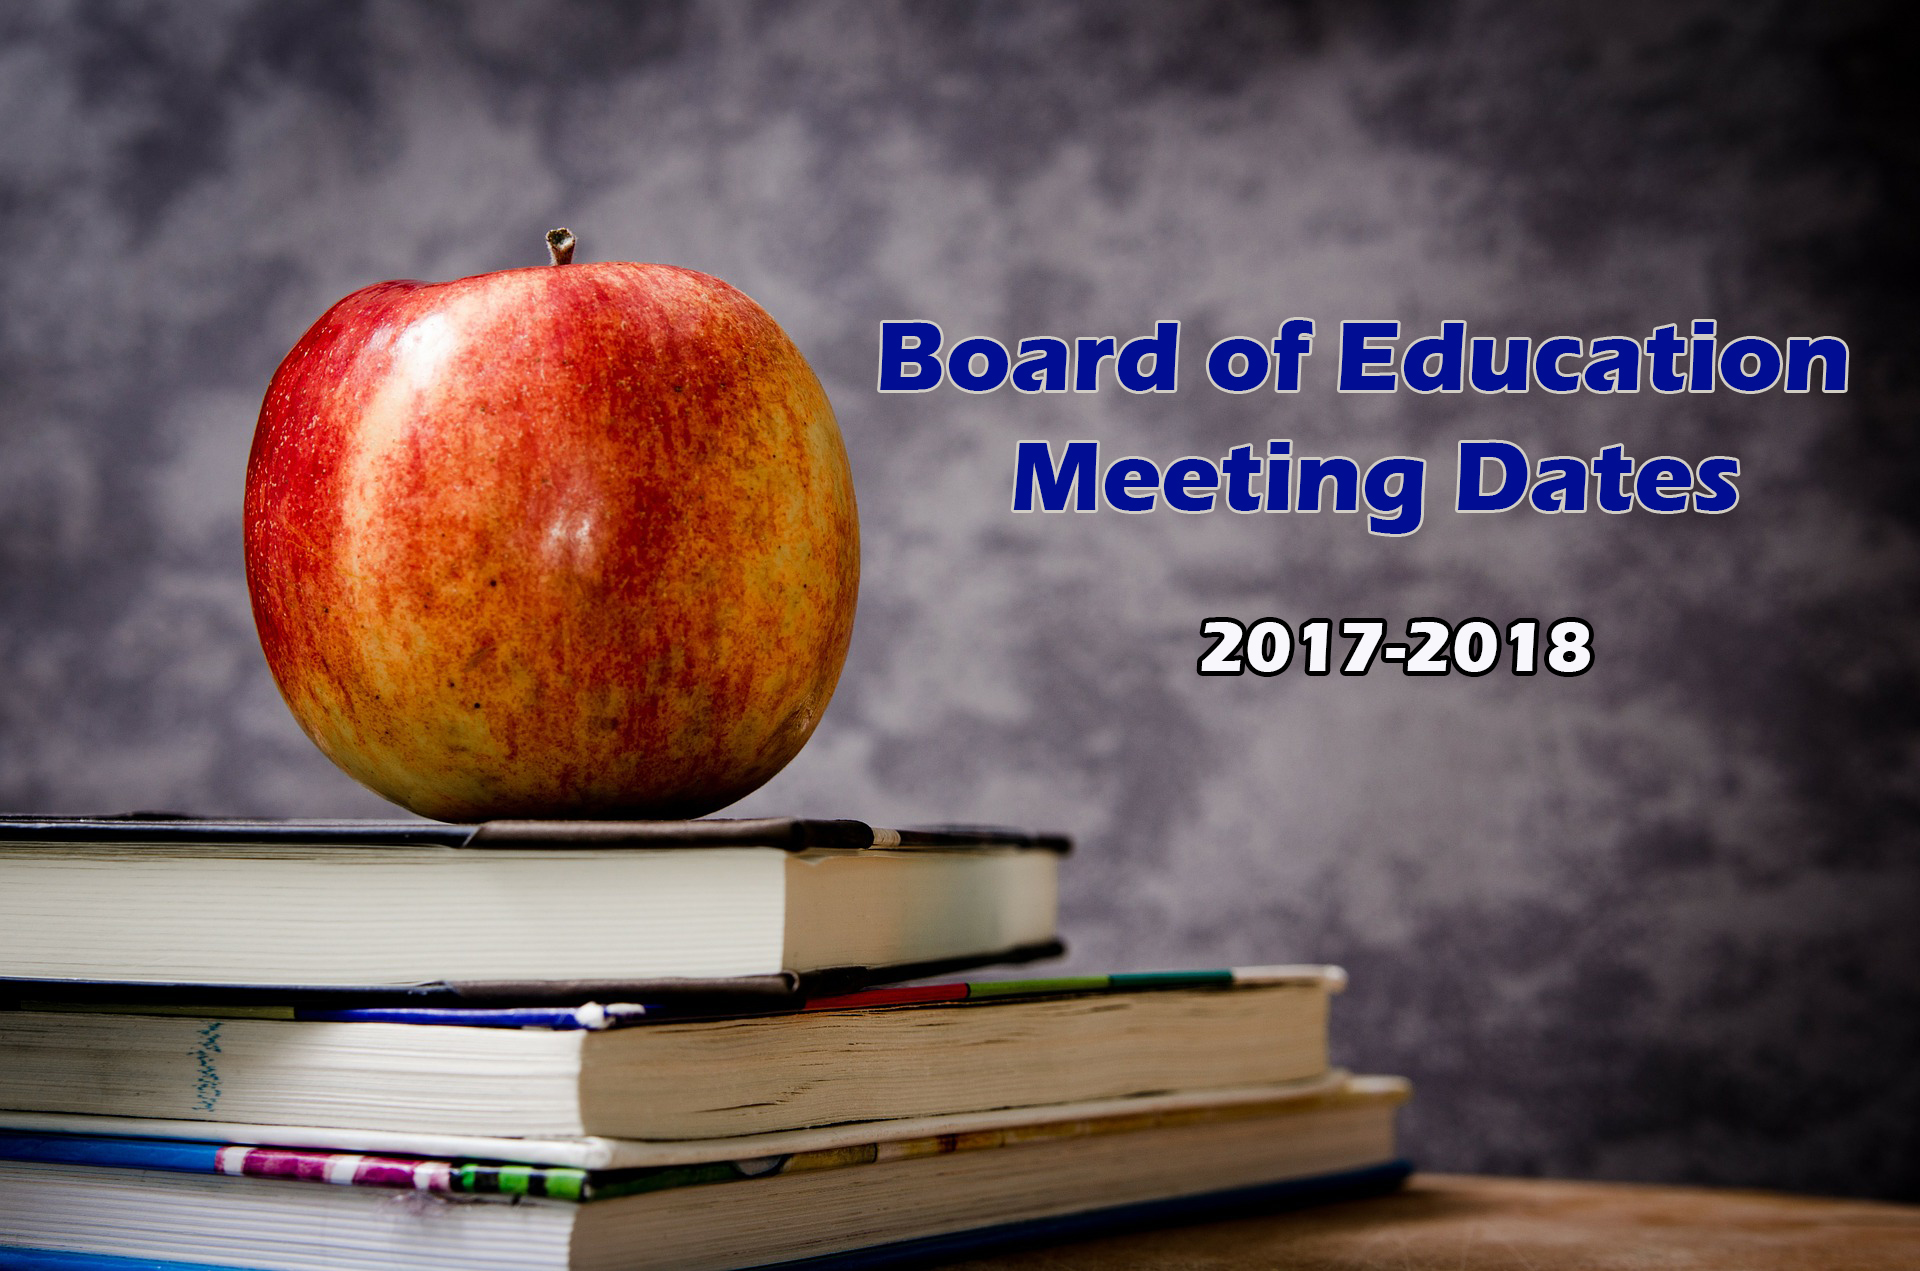 Board of Education Meeting Image